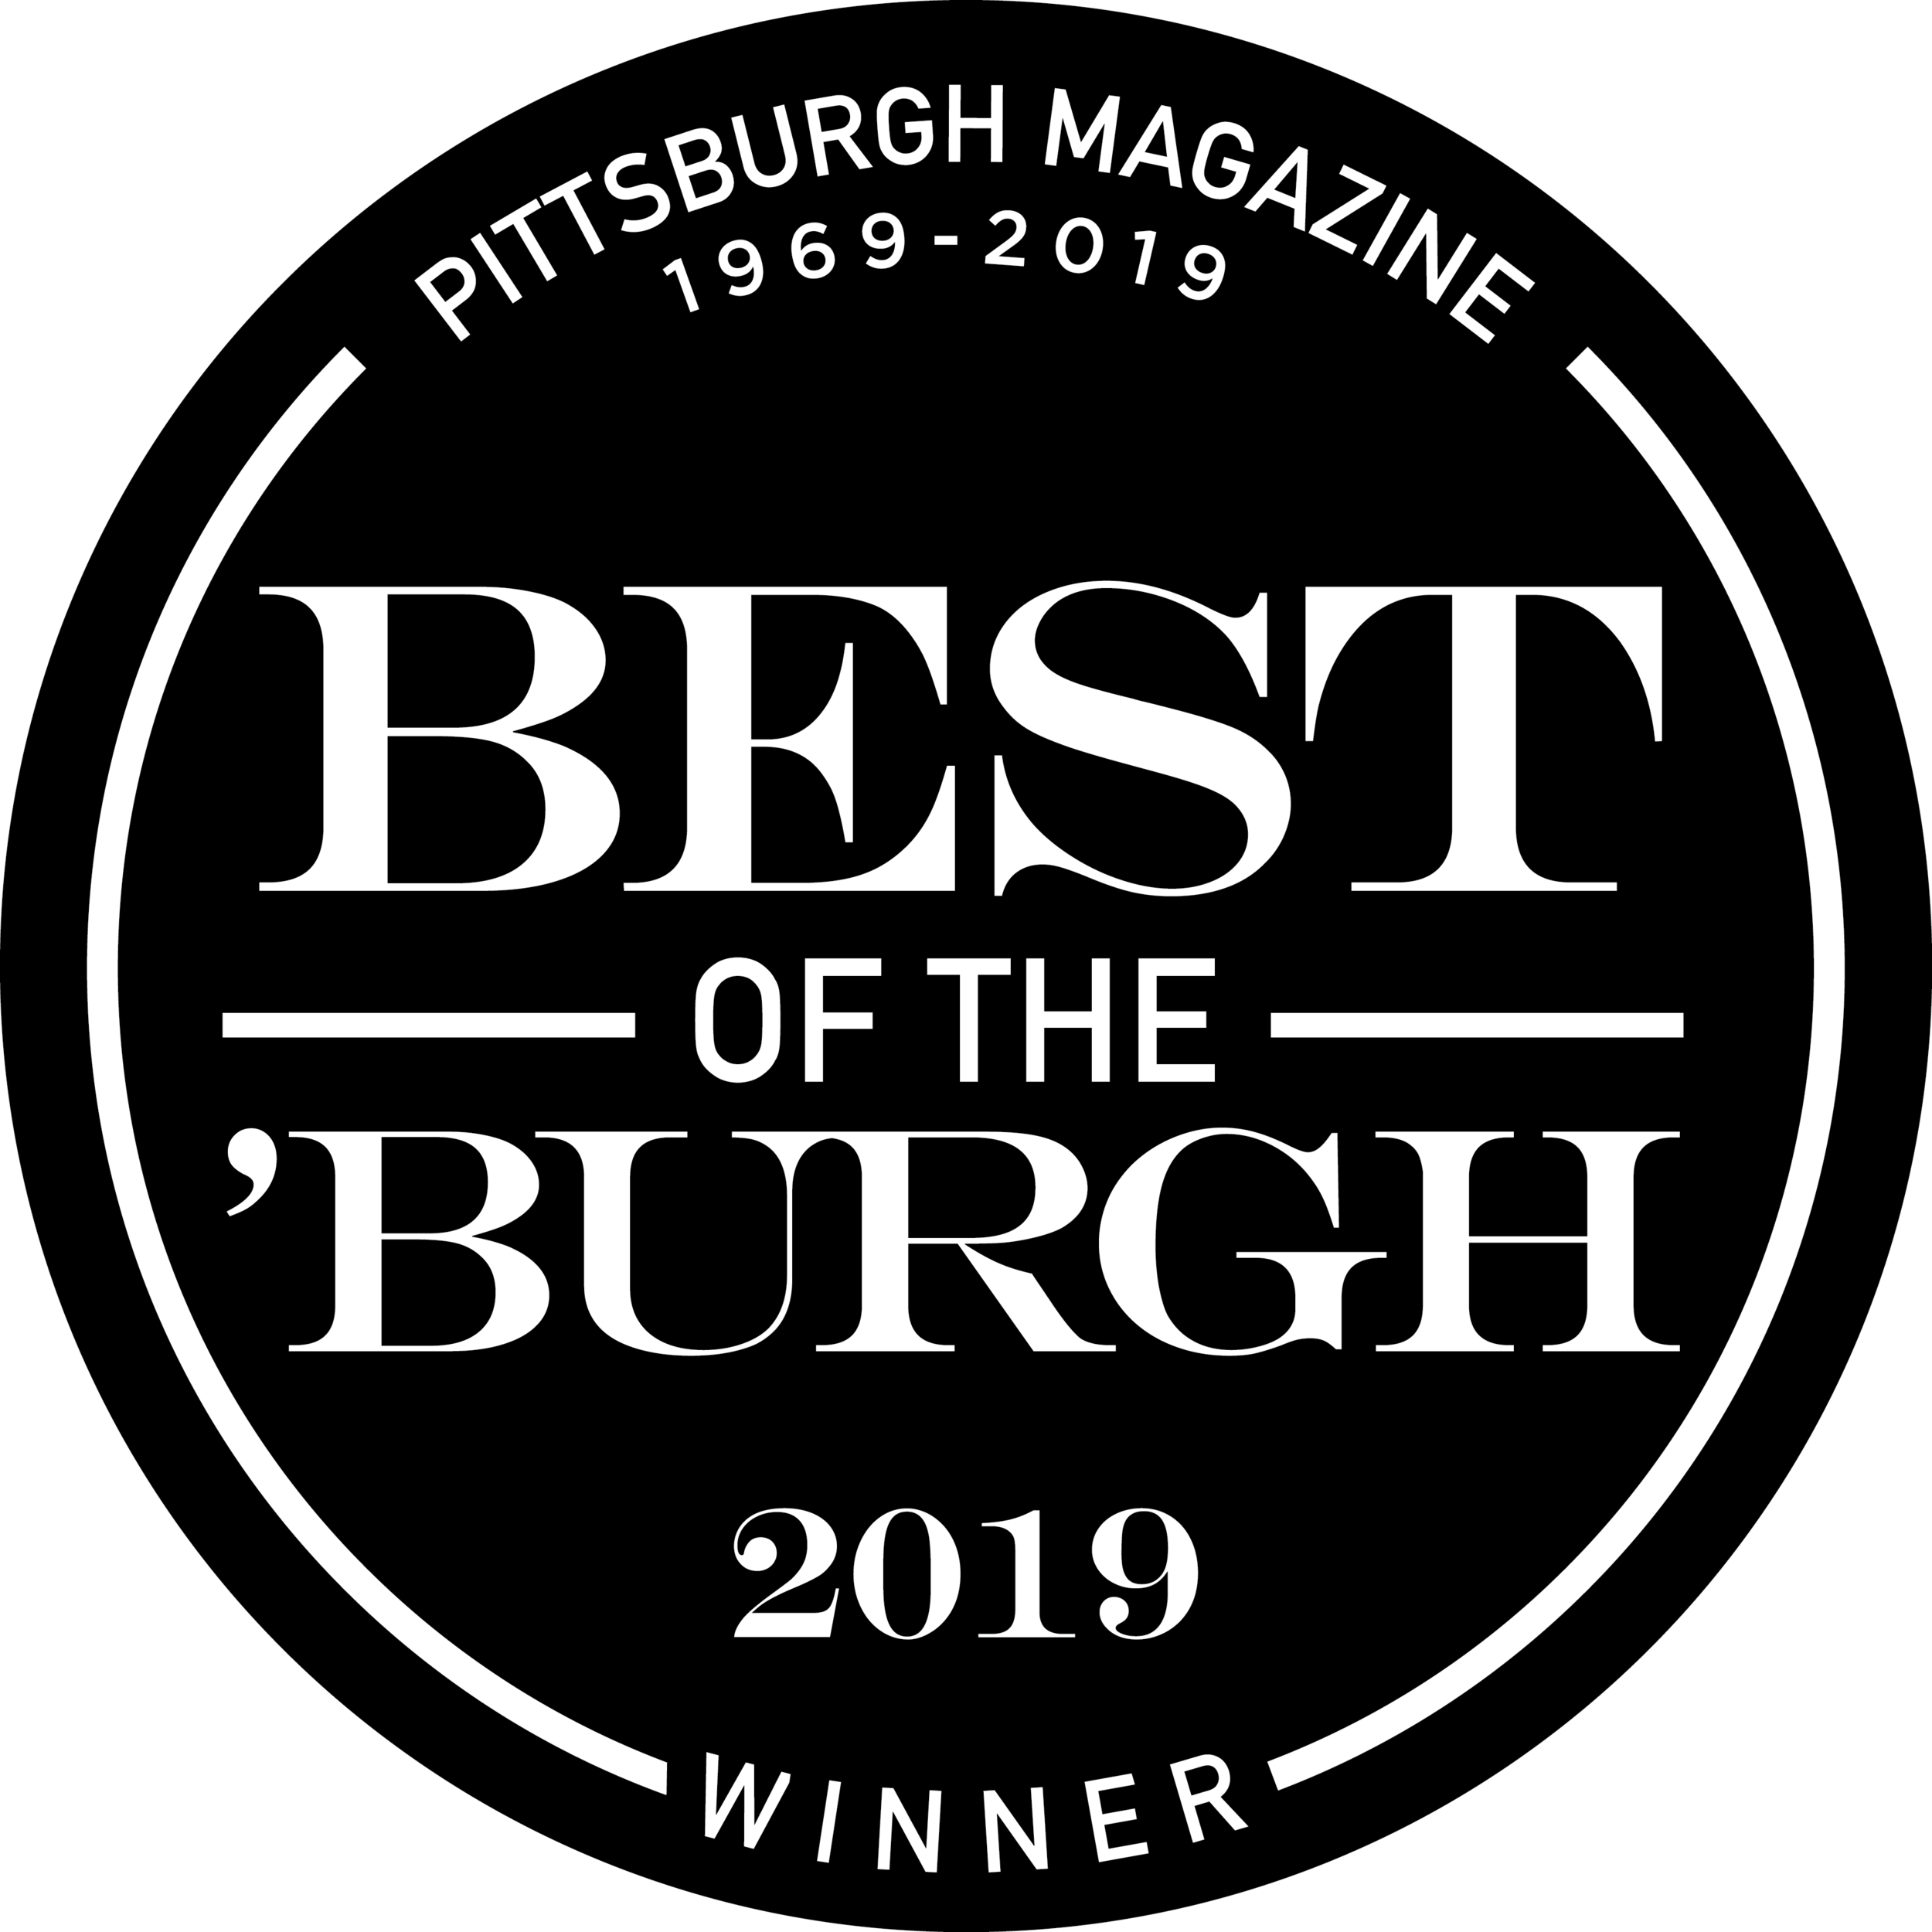 Come visit the Best in the 'Burgh! - 4322 Butler Street Pittsburgh, PA 15201412-621-4126